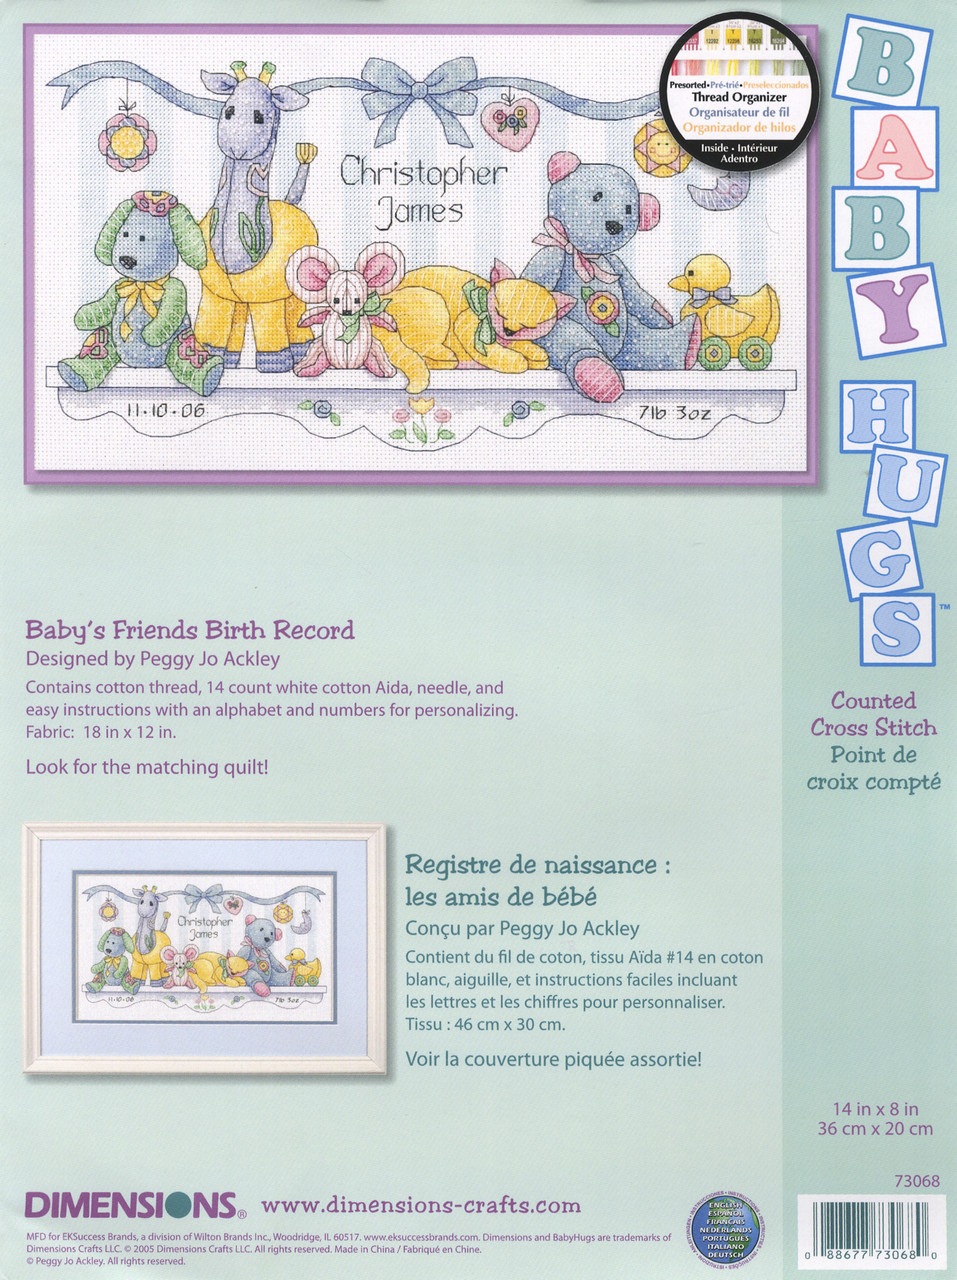 Dimenions Baby Hugs - Baby's Friends Birth Record